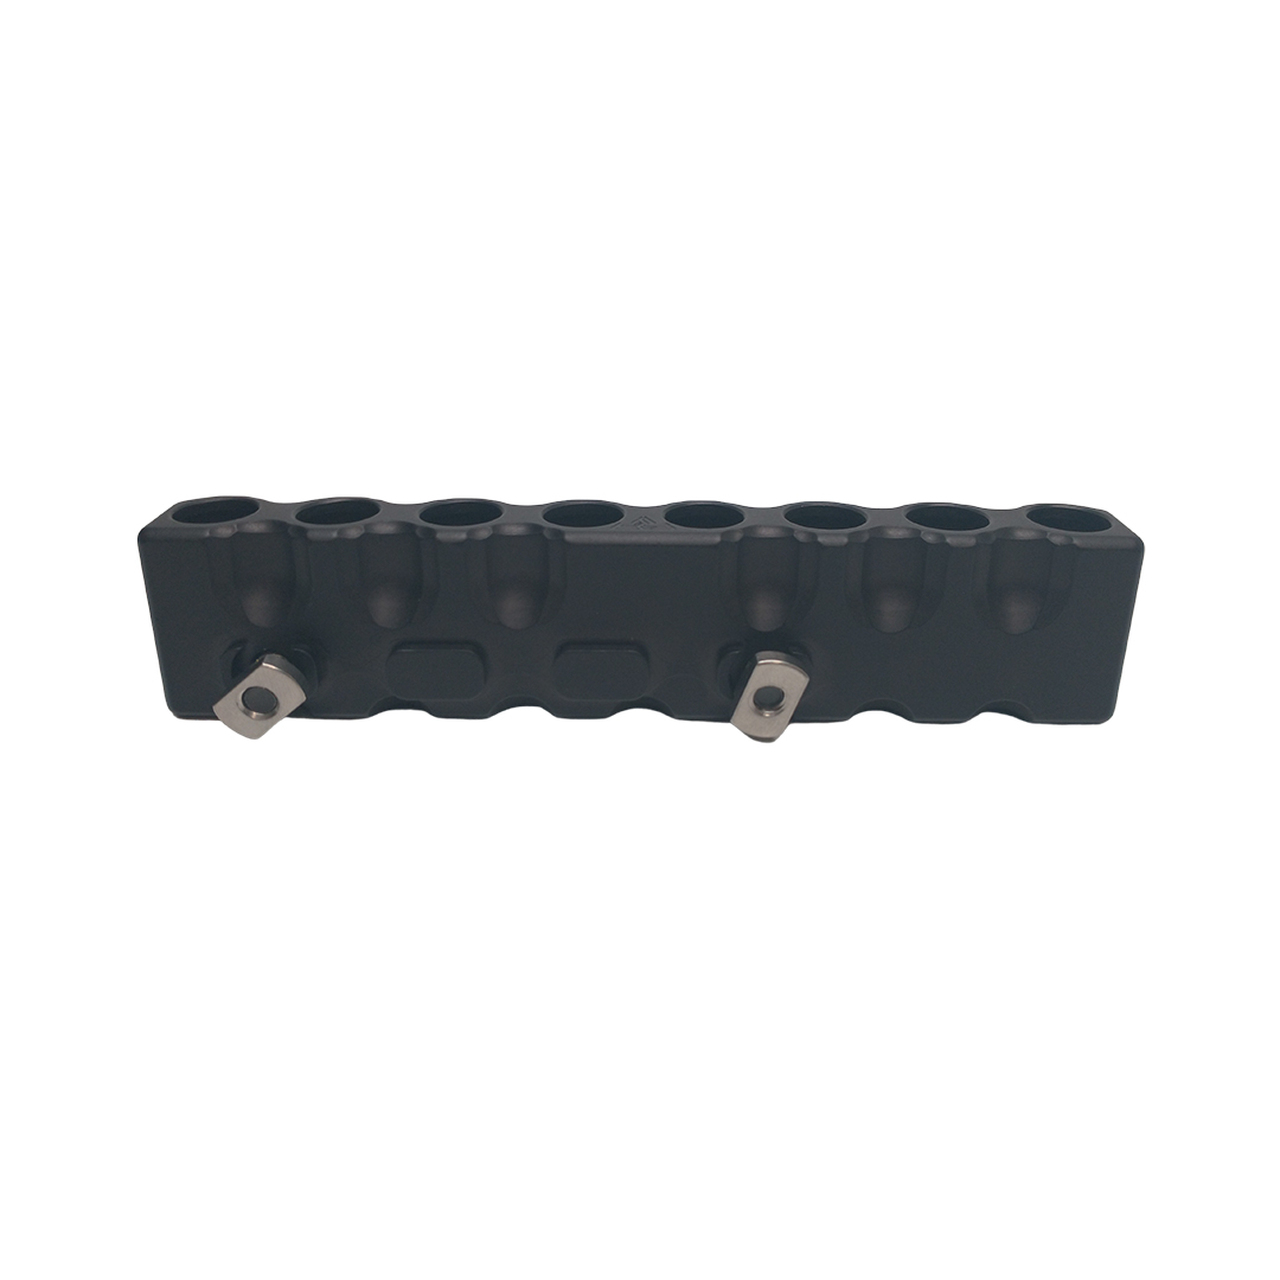 Ranger Point Precision M-LOK 367 Mag 38 special Cartridge Quiver holds eight cartridges to complement our popular M-LOK forearm rails for Marlin, Henry, and Rossi lever-action rifles (will also work with any M-LOK rail on the market).